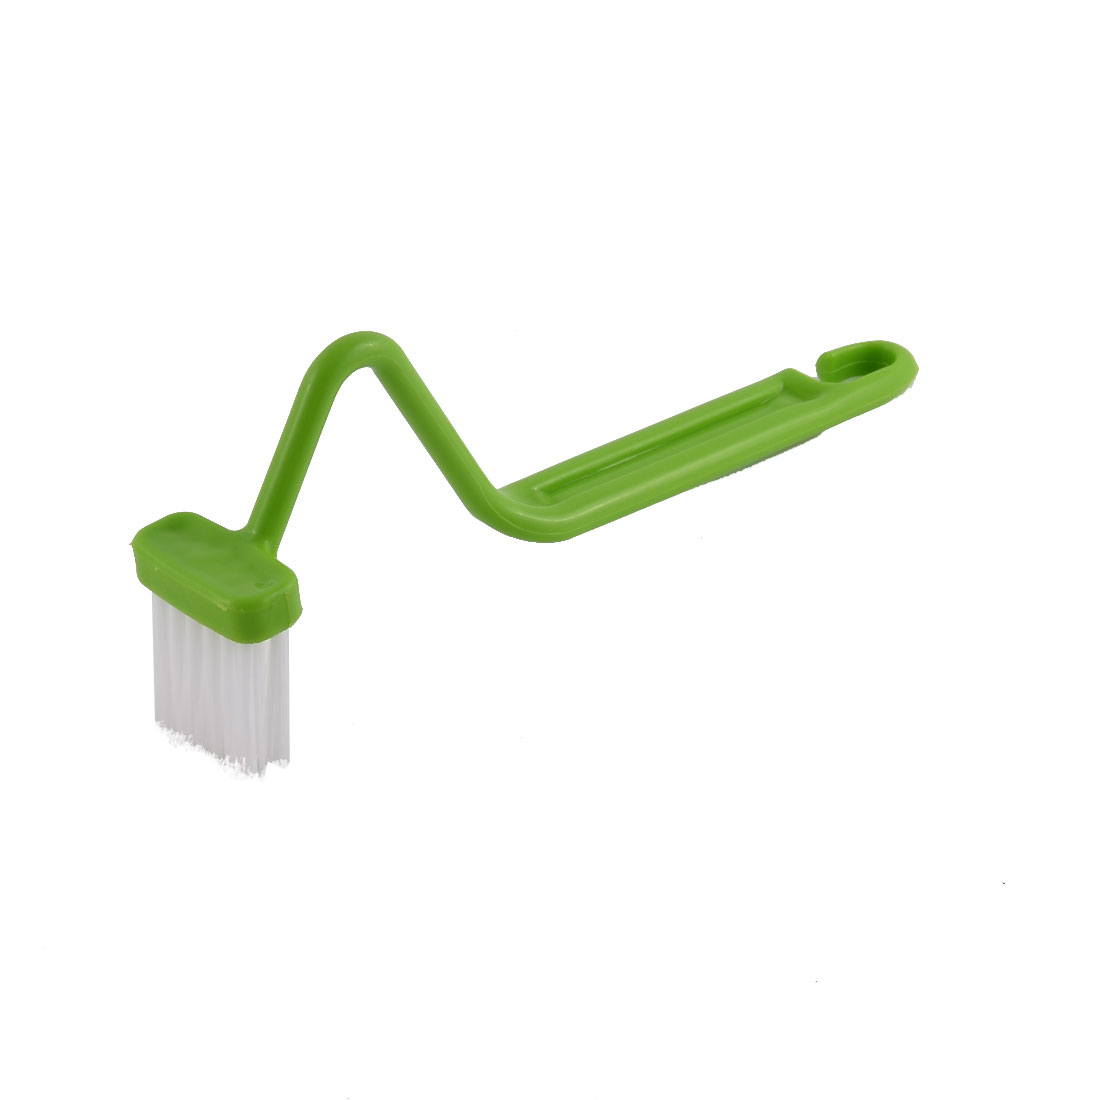 Home Bathroom S Shaped Curved Handle Toilet Washing Cleaning Brush Green